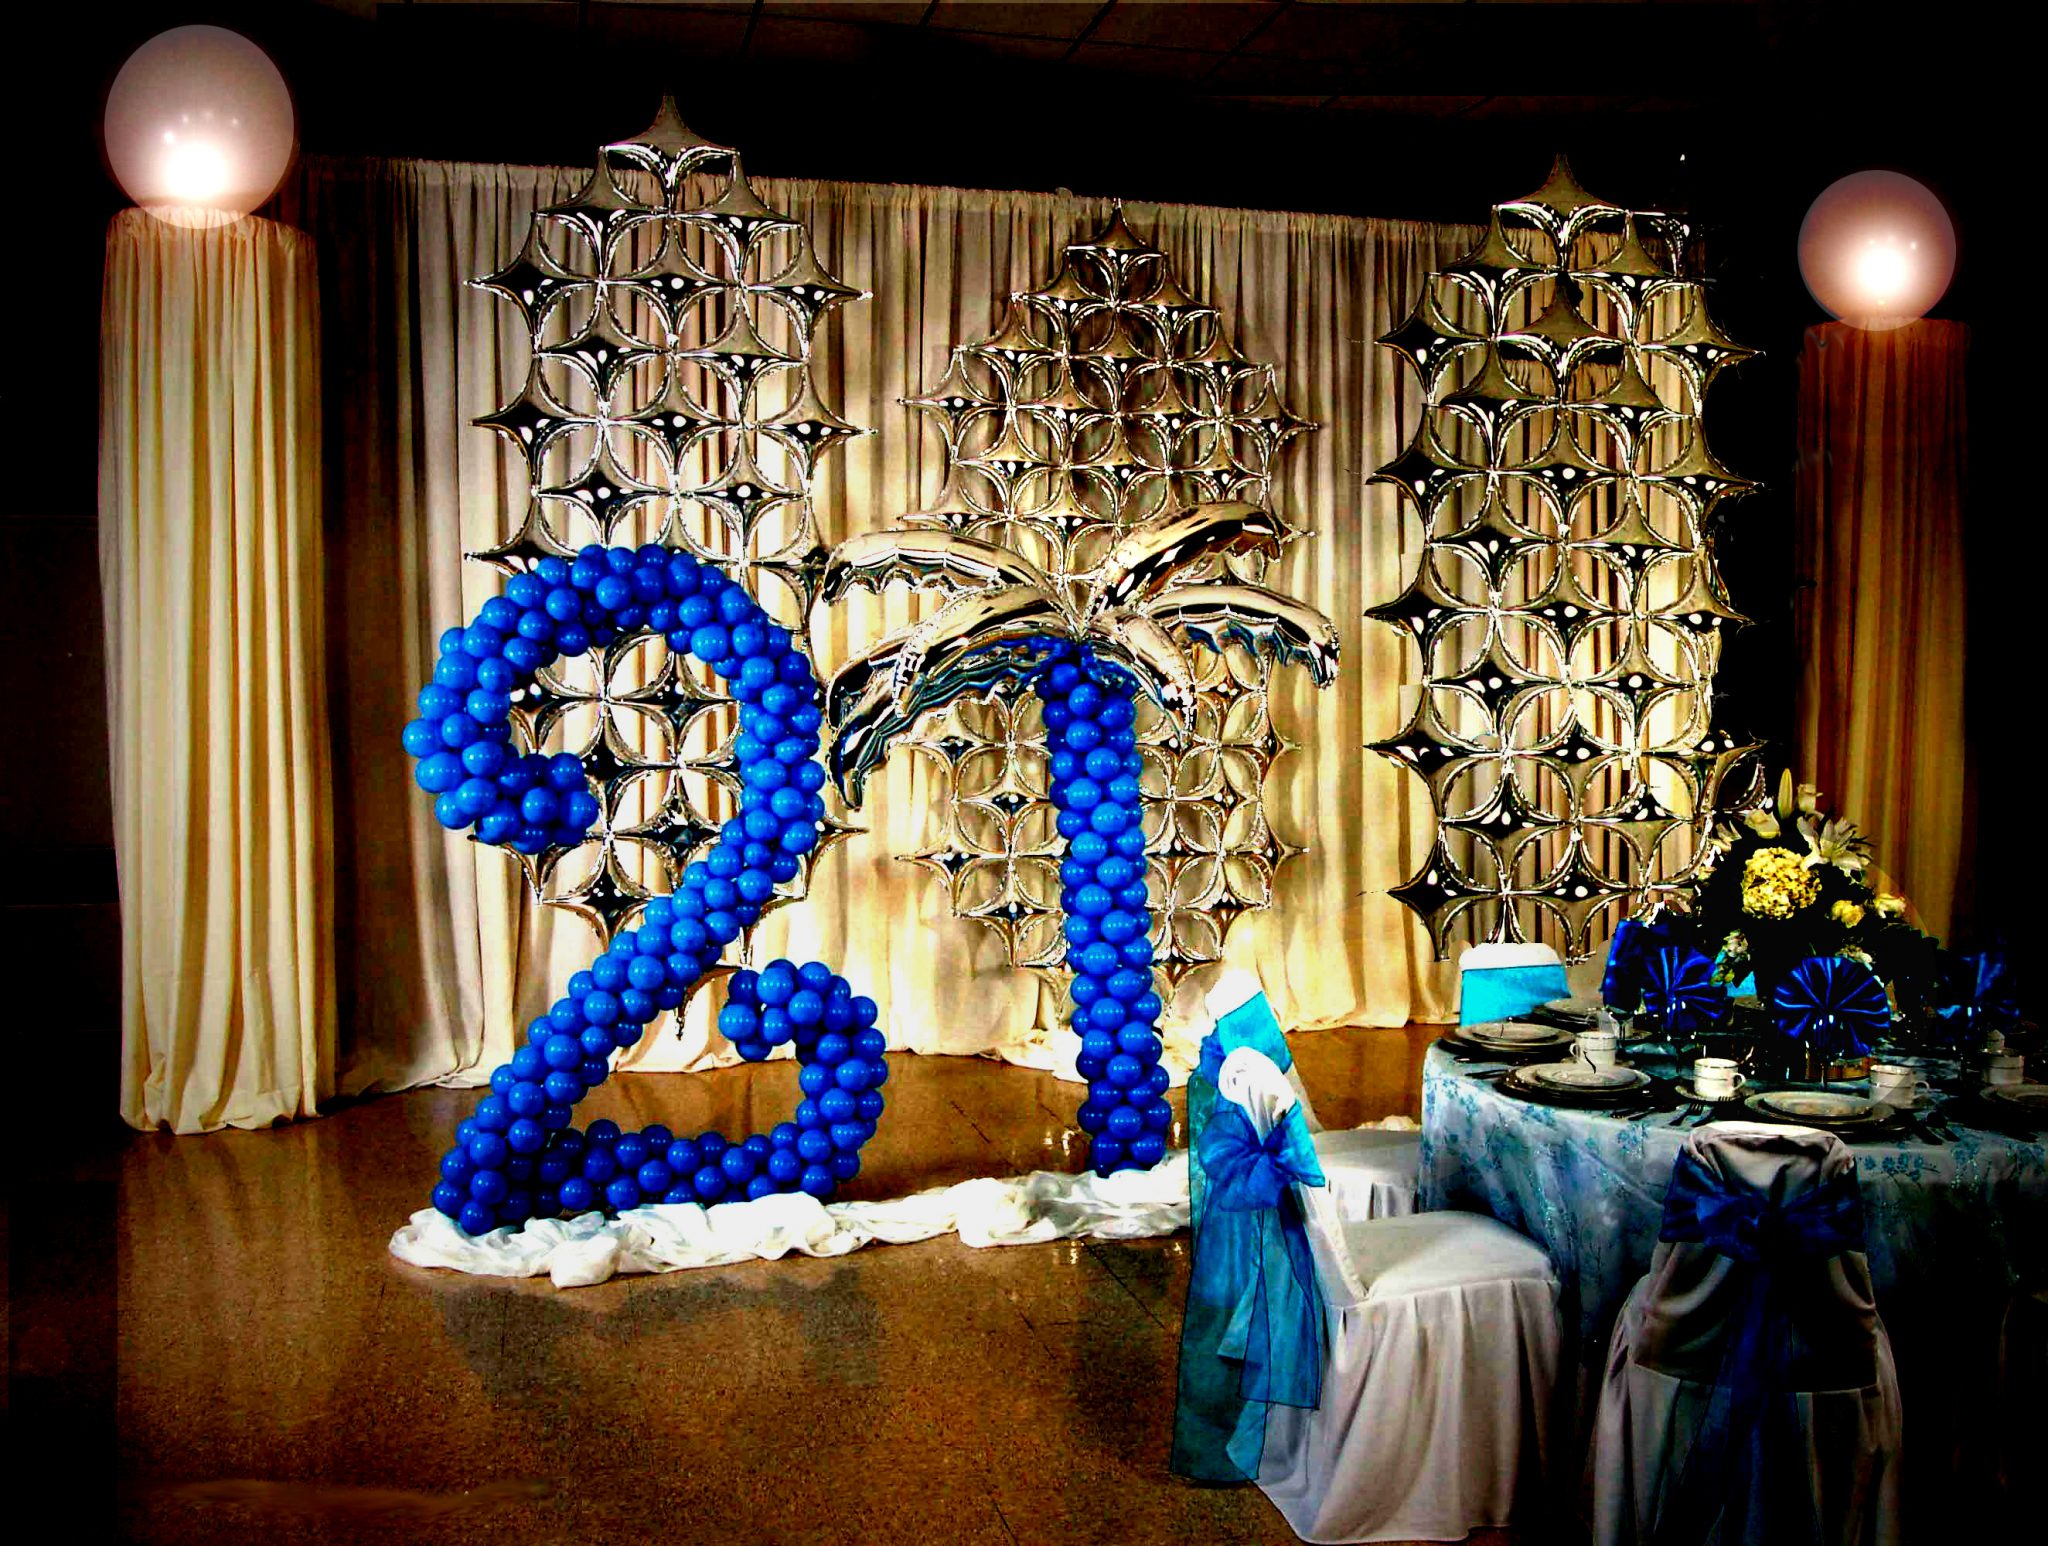 21st Birthday Table Decorations Ideas Image Inspiration